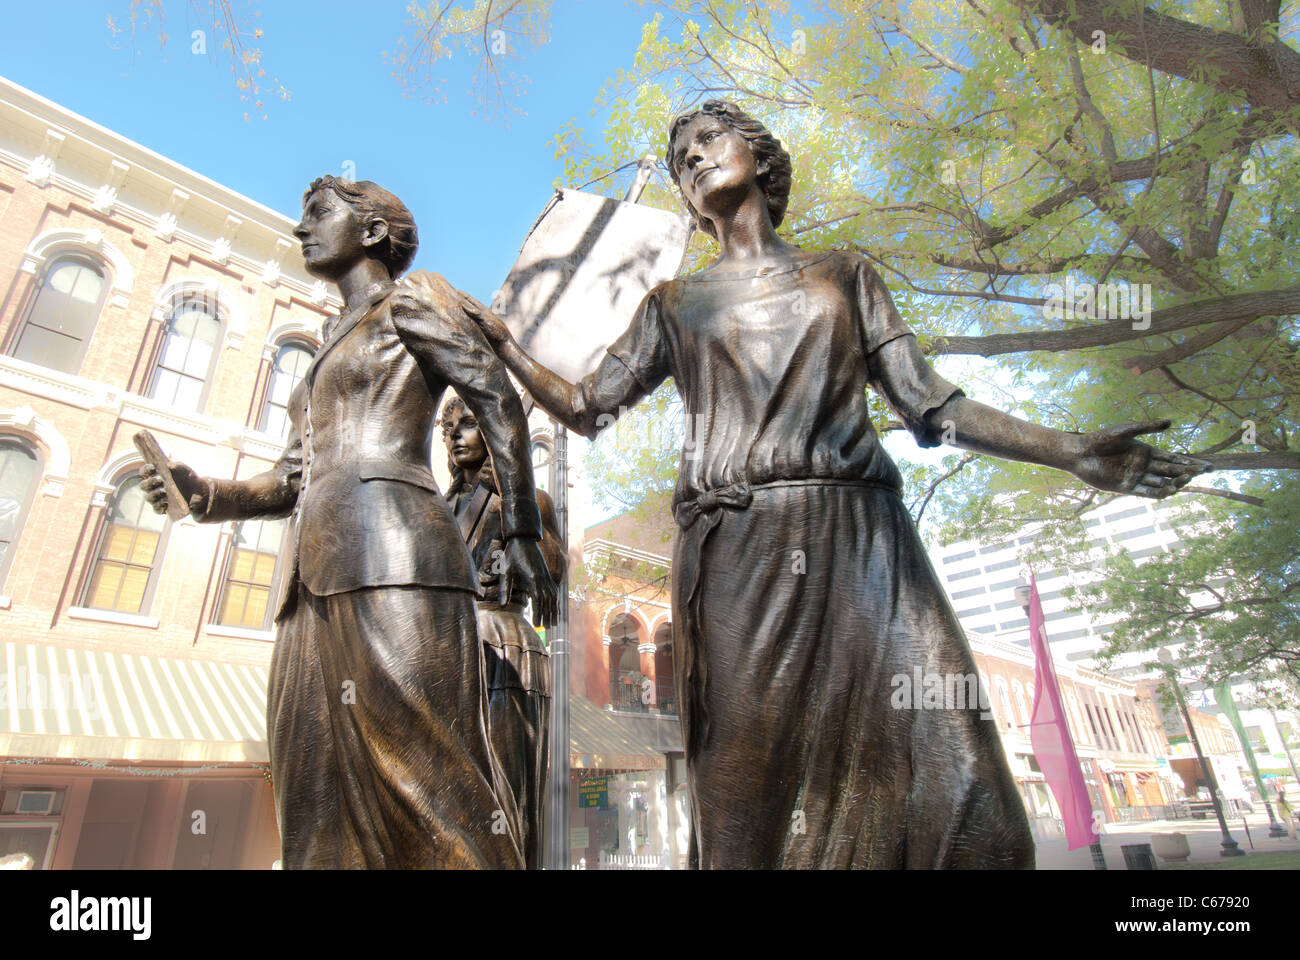 Tennessee Woman Suffrage Memorial, sculptured in 2006 by Alan Lequire, Market Square in Knoxville, Tennessee, USA - Stock Image